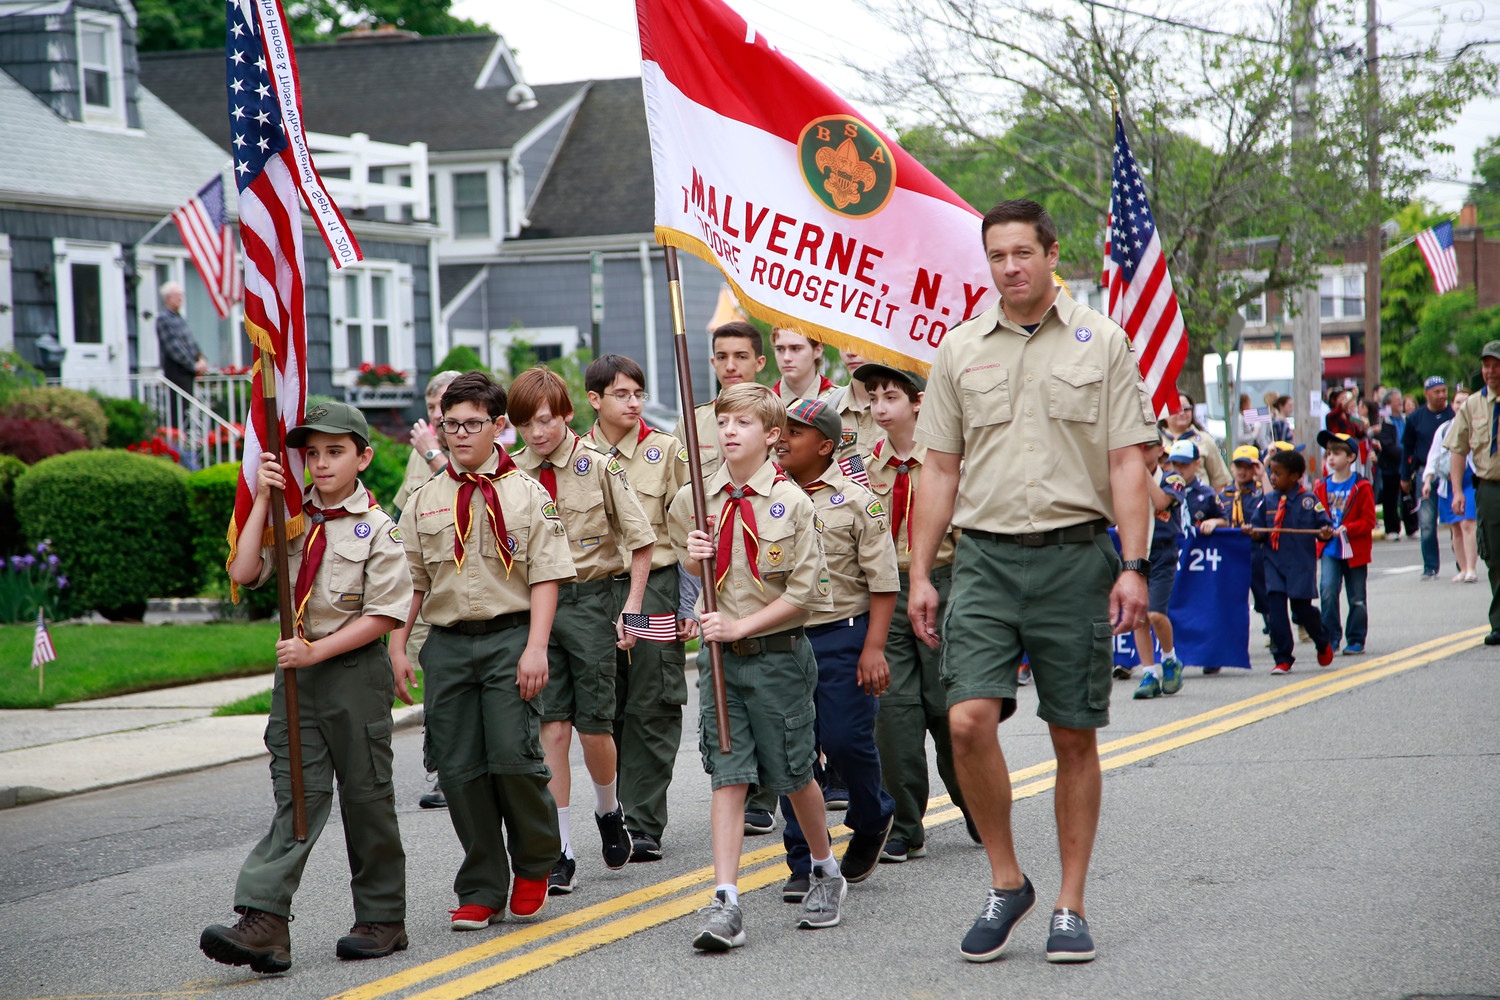 Carl Prizzi, right, led Boy Scout Troop 24 of Malverne at the parade.